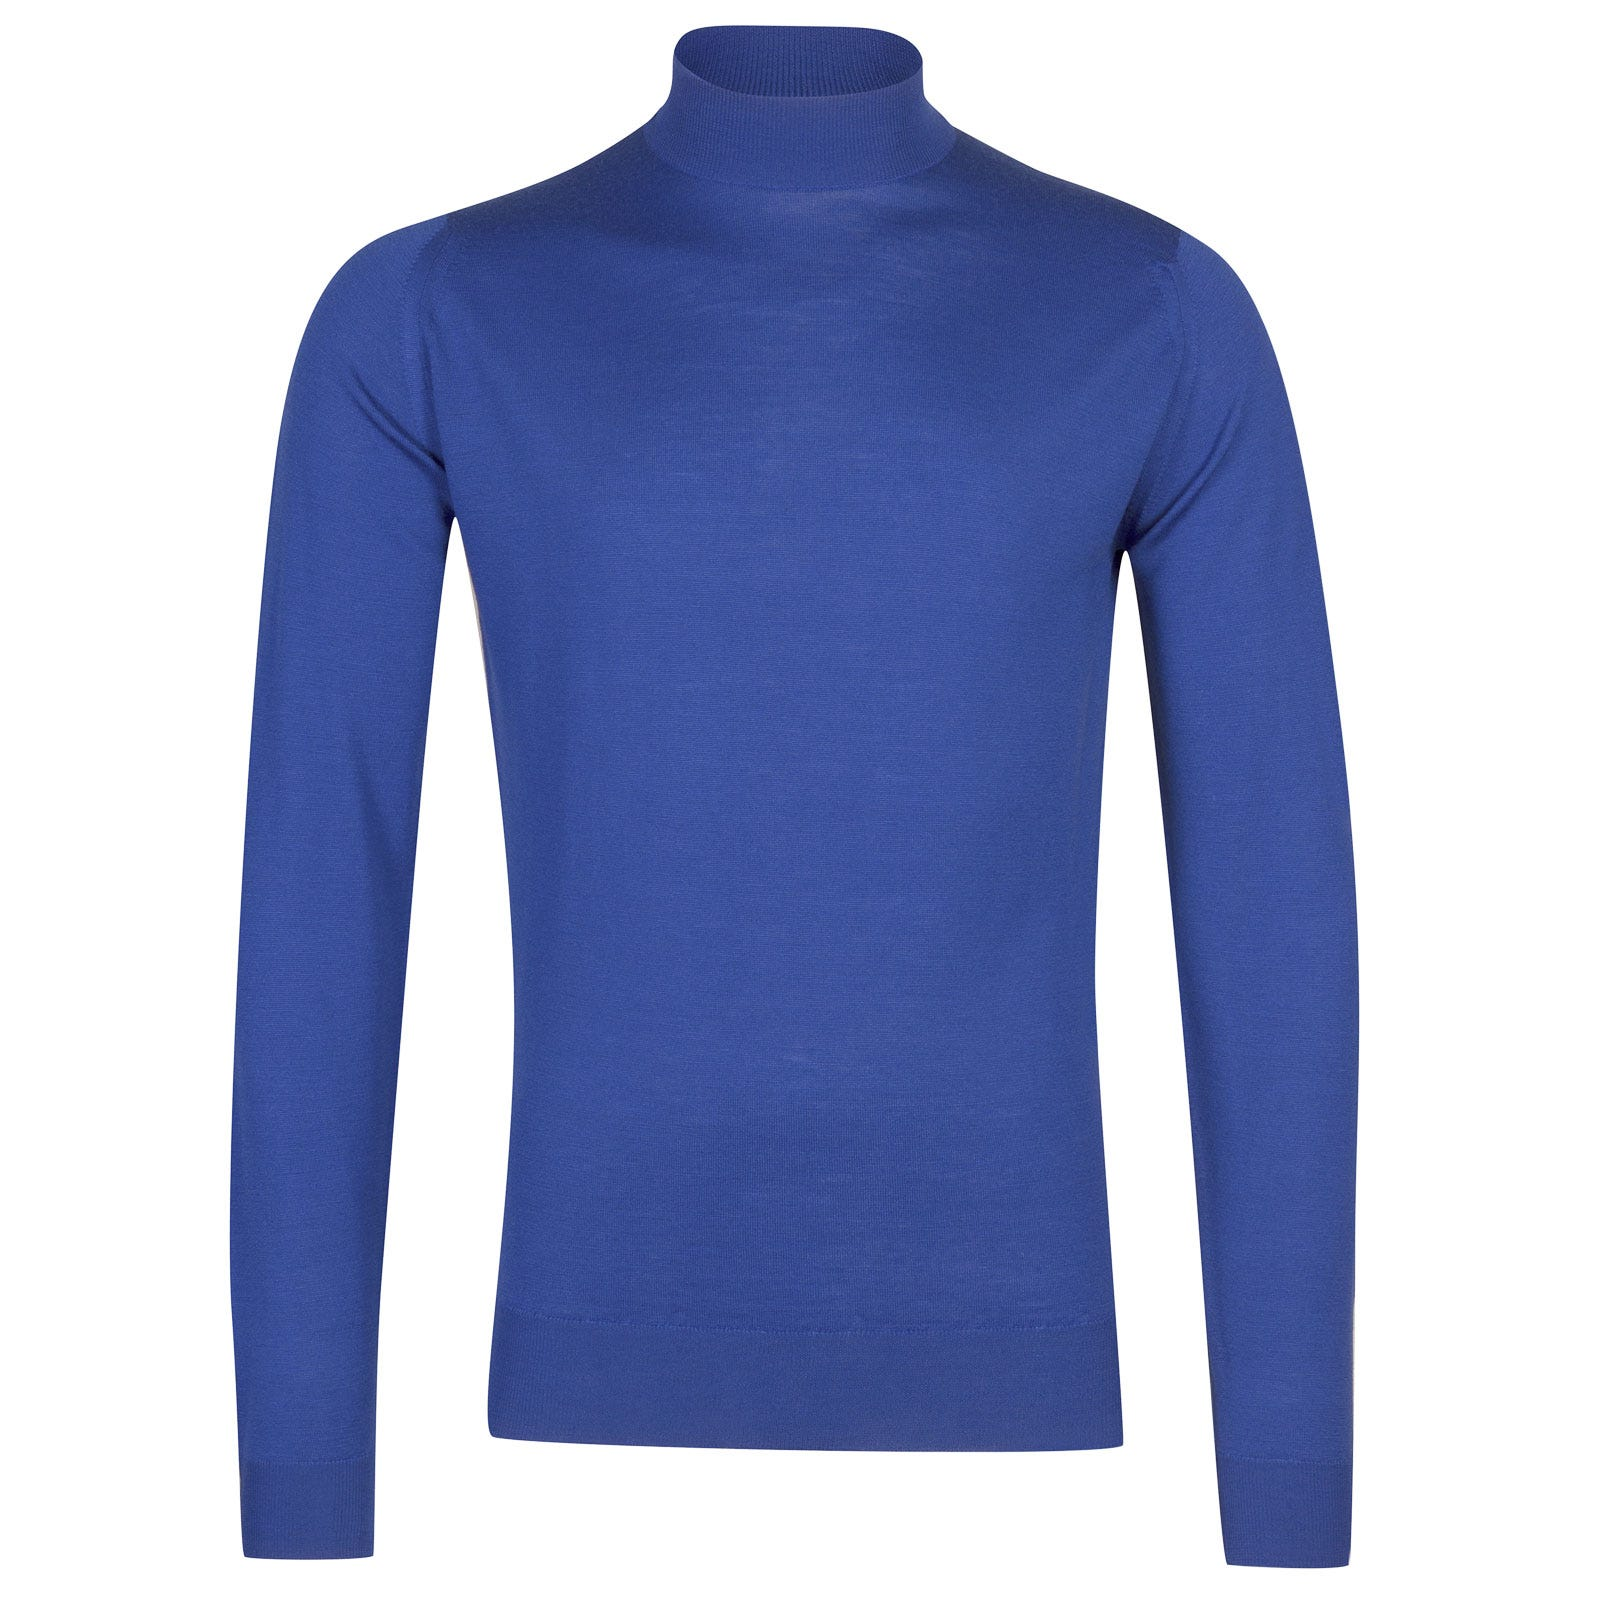 John Smedley Harcourt Merino Wool Pullover in Chambray Blue-M